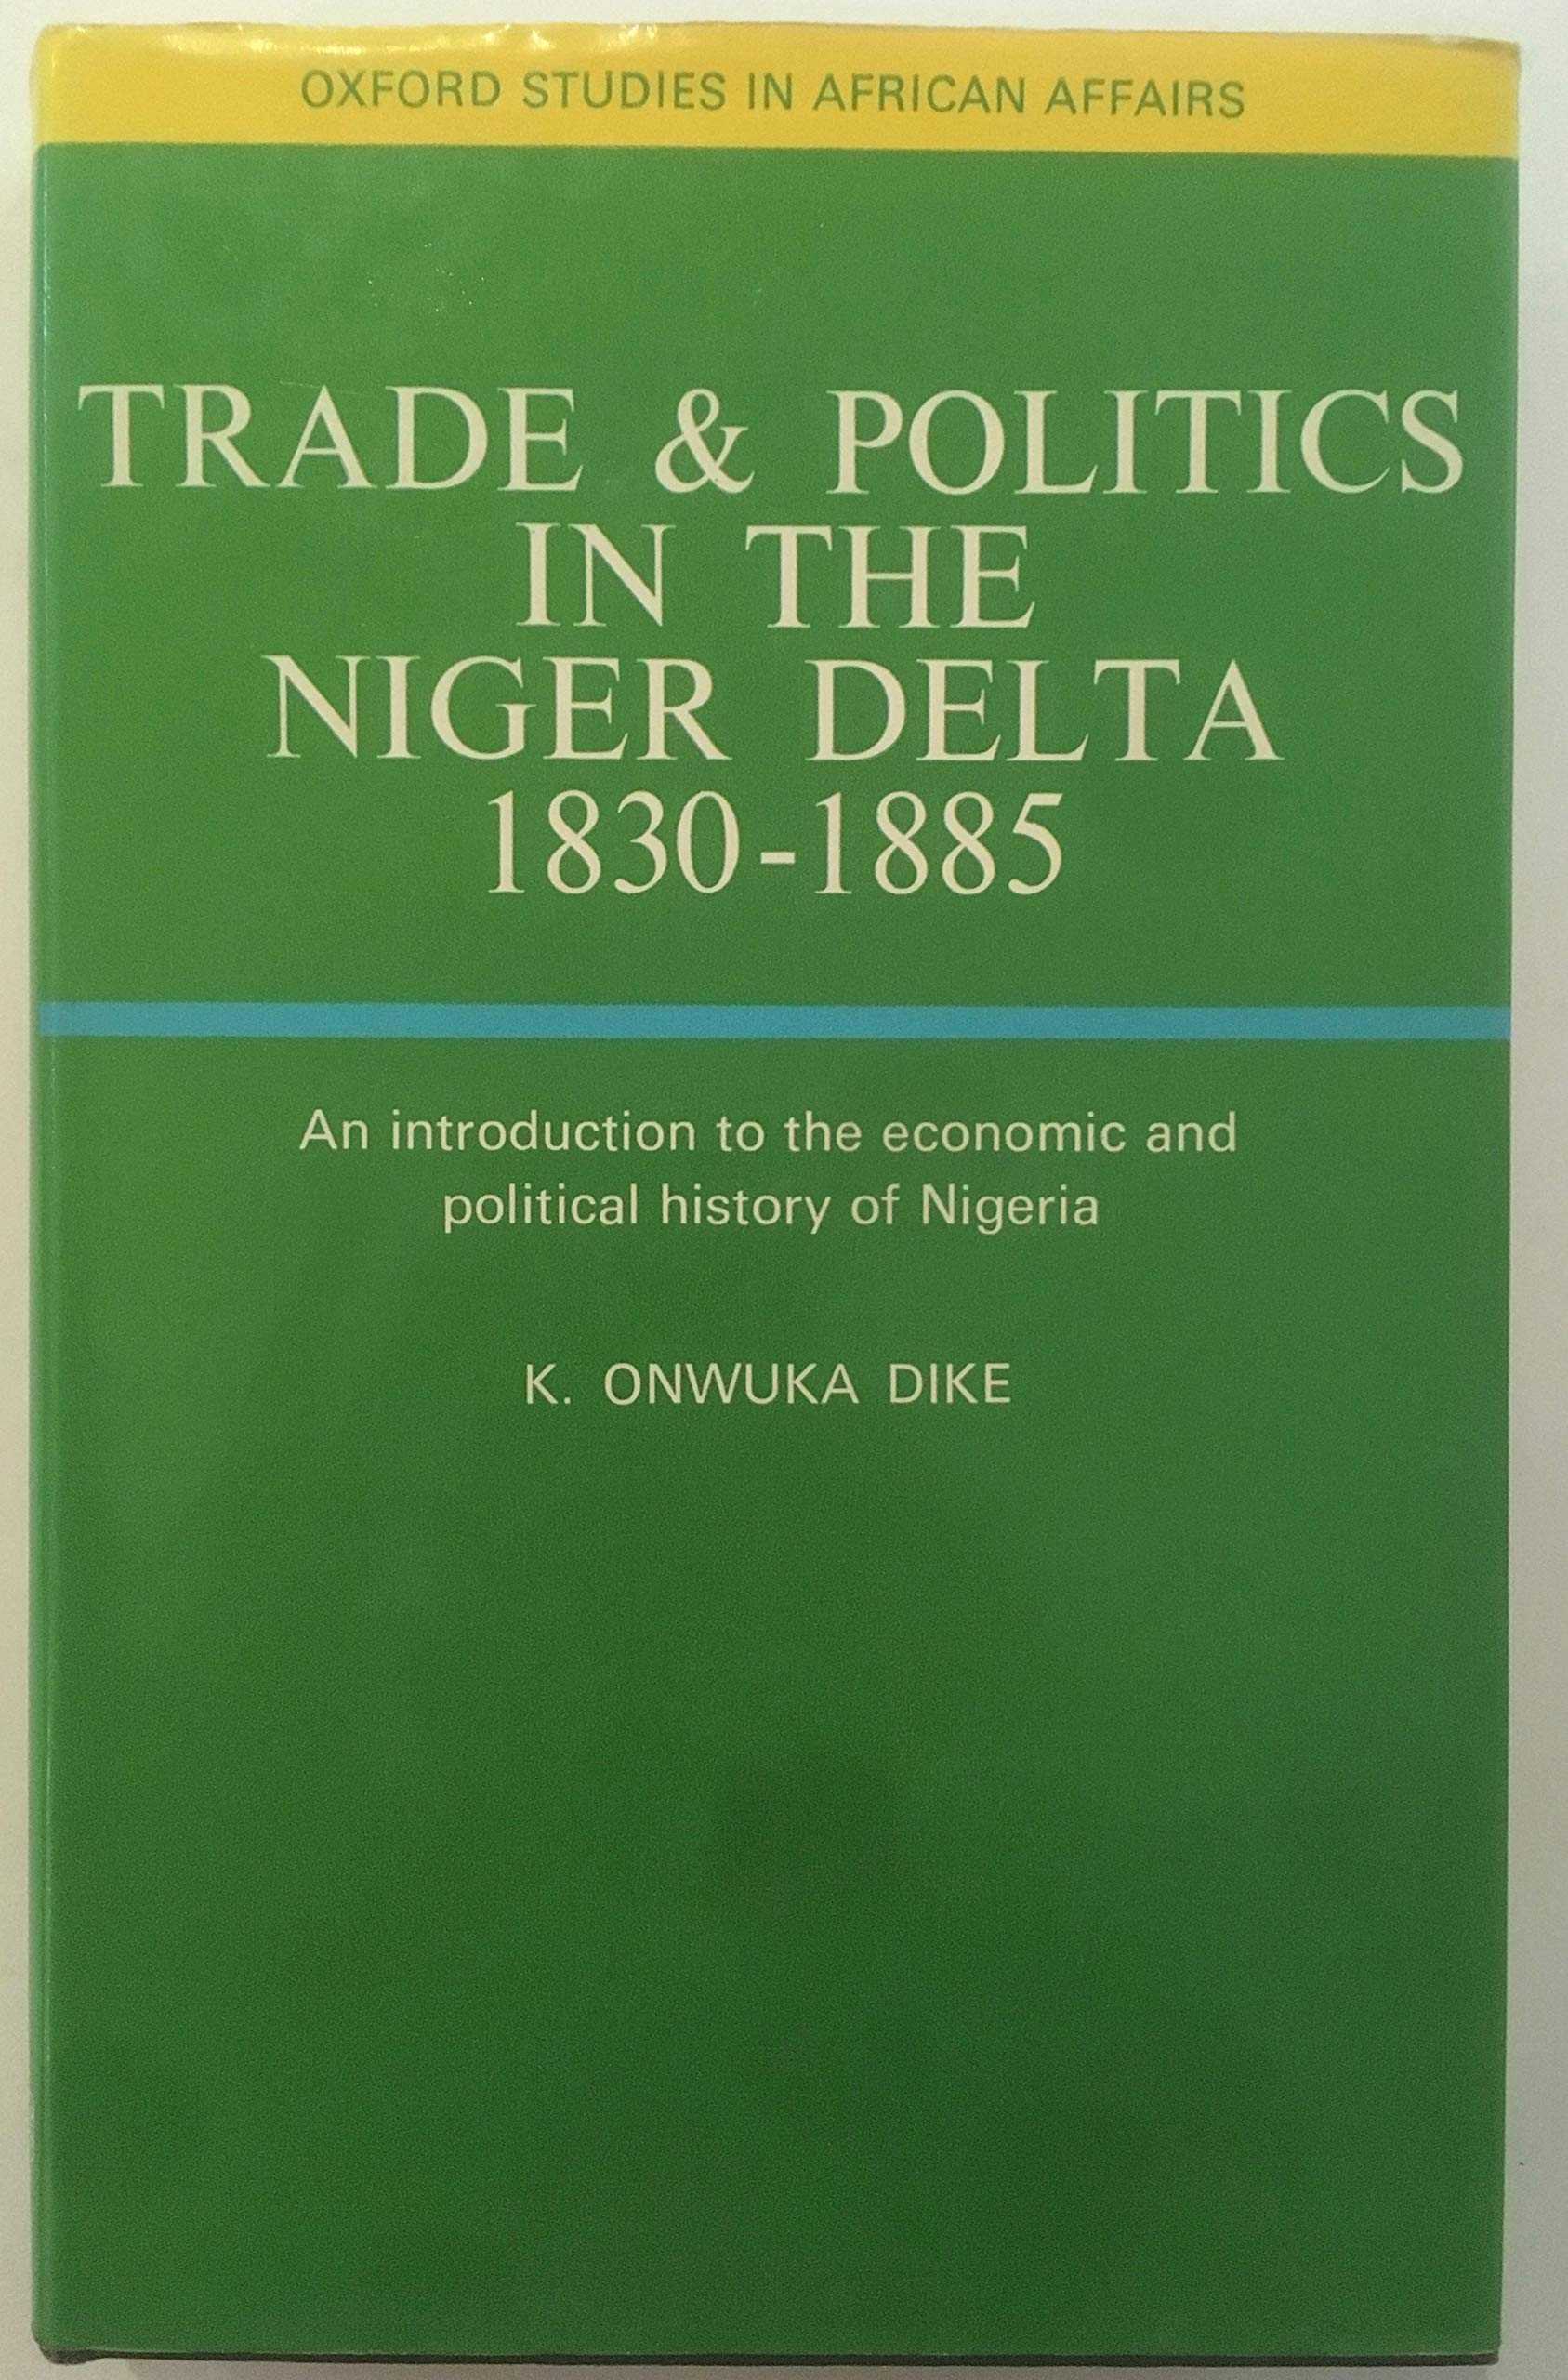 Trade and Politics in the Niger Delta 1830-1885: K, O Dike